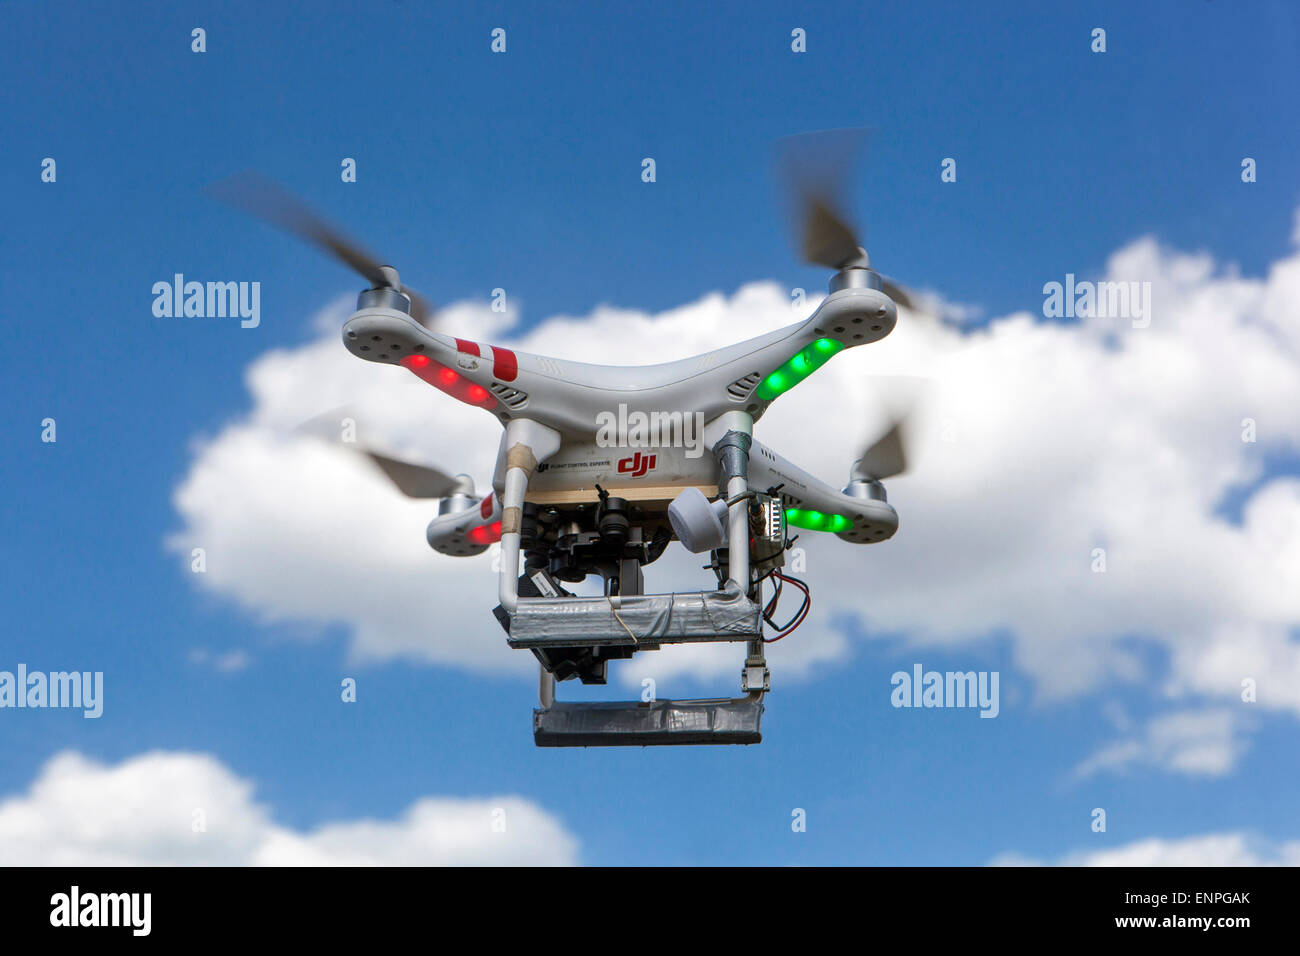 Drone on sky Prague Czech Republic Europe - Stock Image